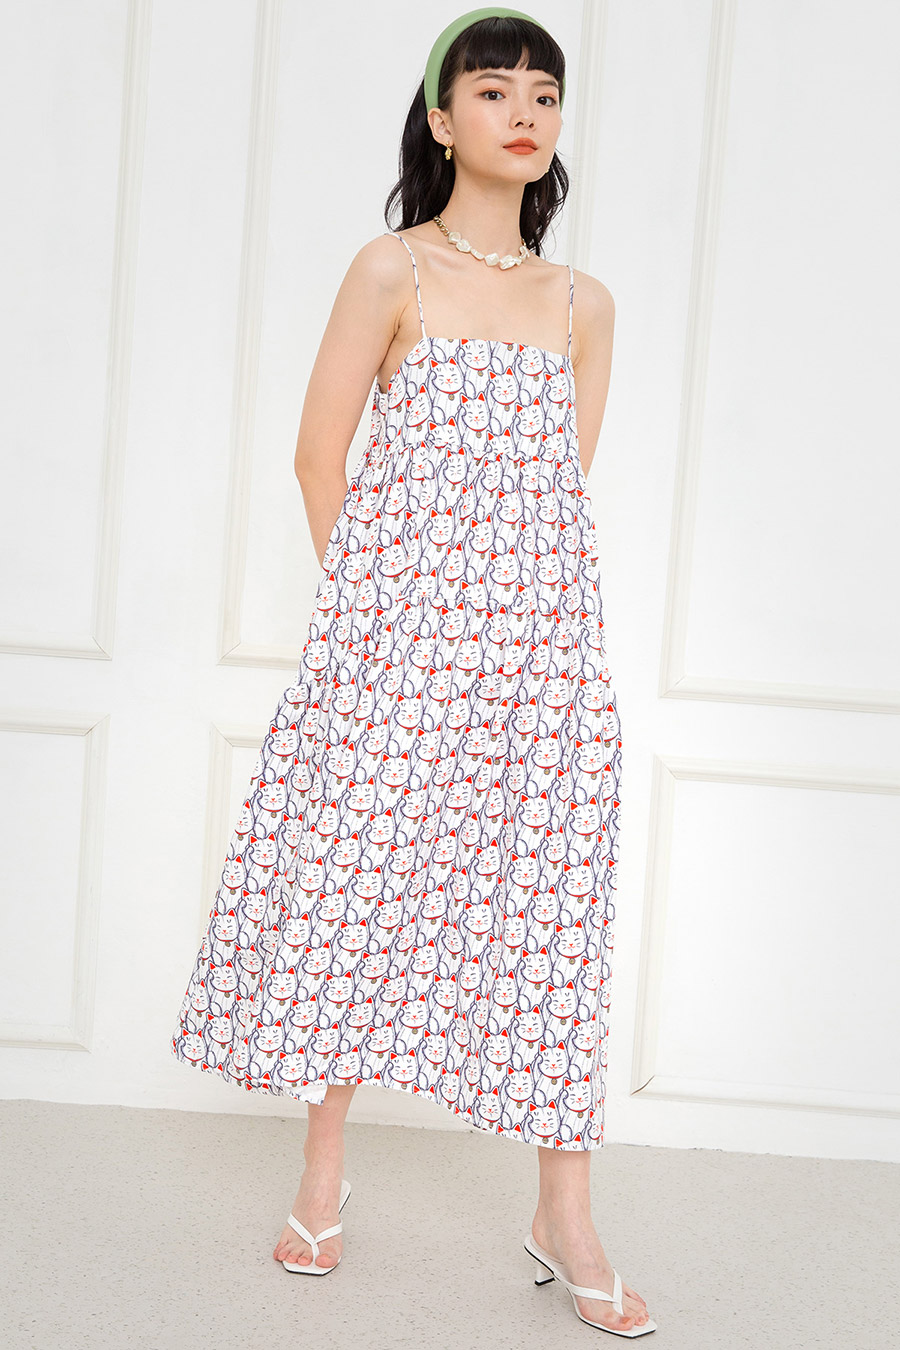 *RESTOCKED* OLIVIA DRESS - MANEKI NEKO [BY MODPARADE]